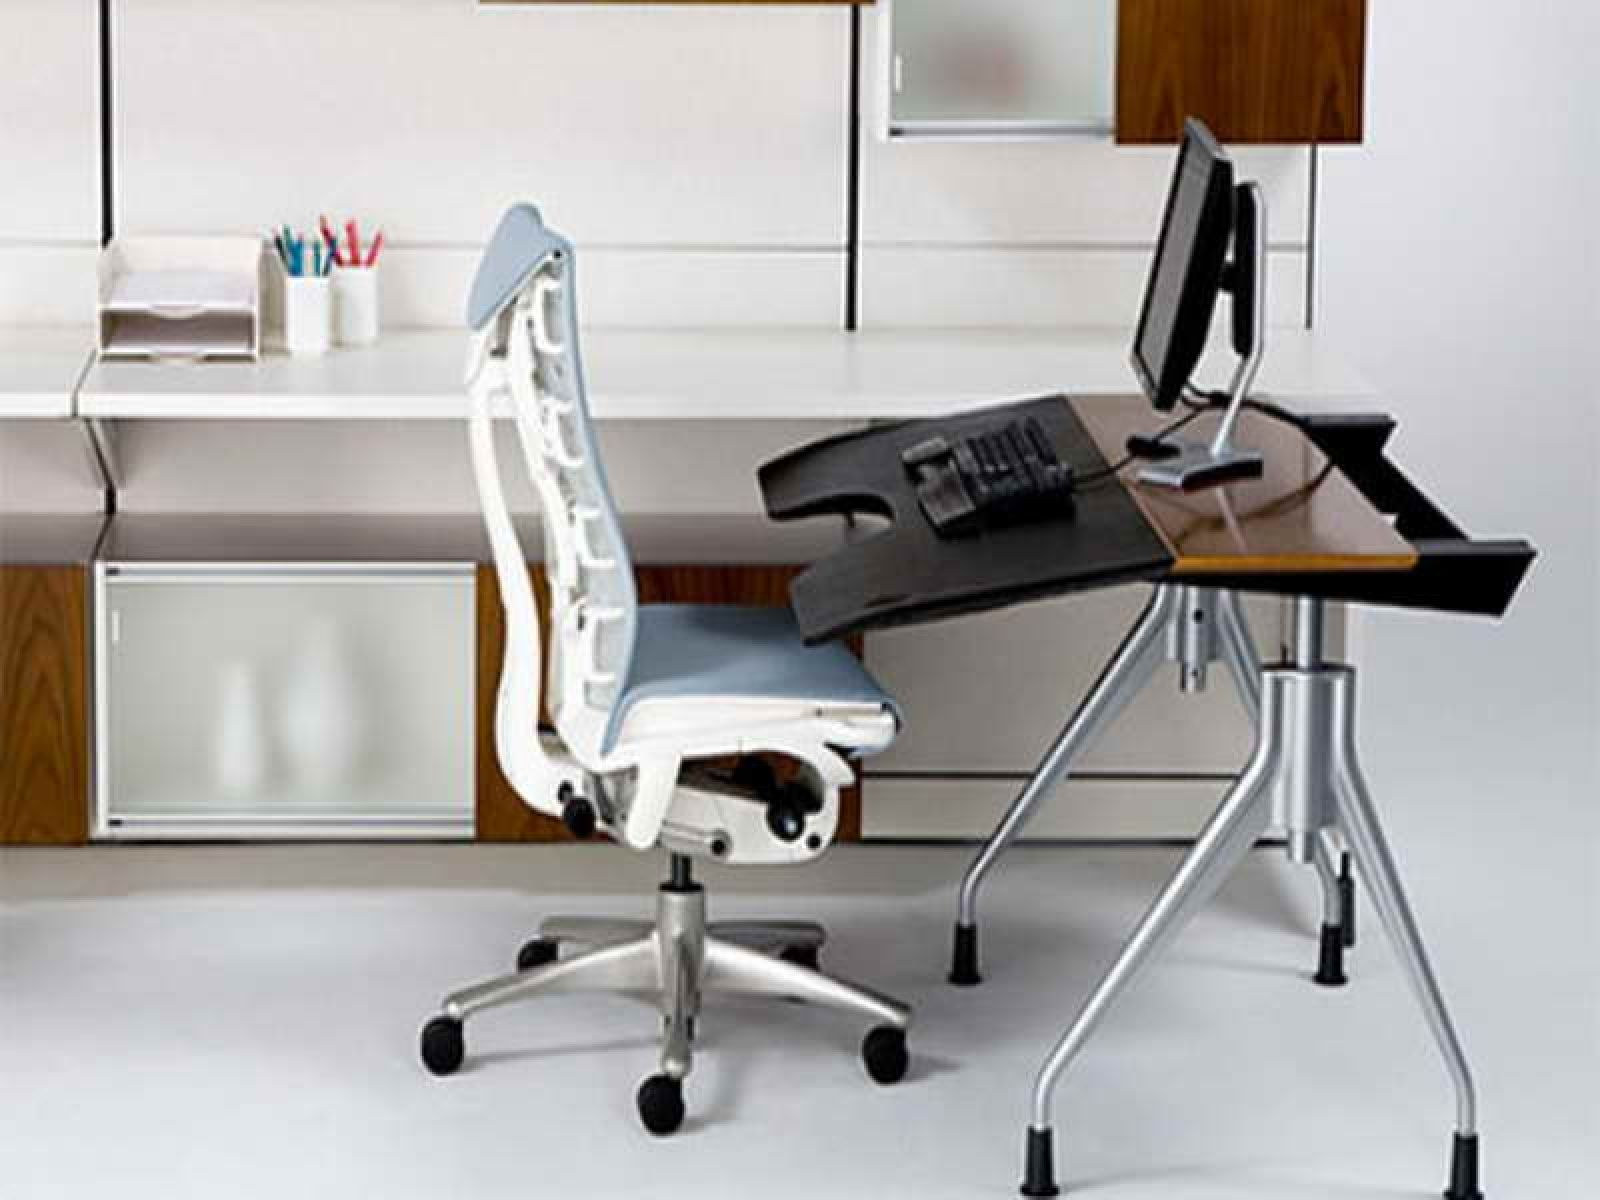 Ergonomic computer desk for home office with white office chair